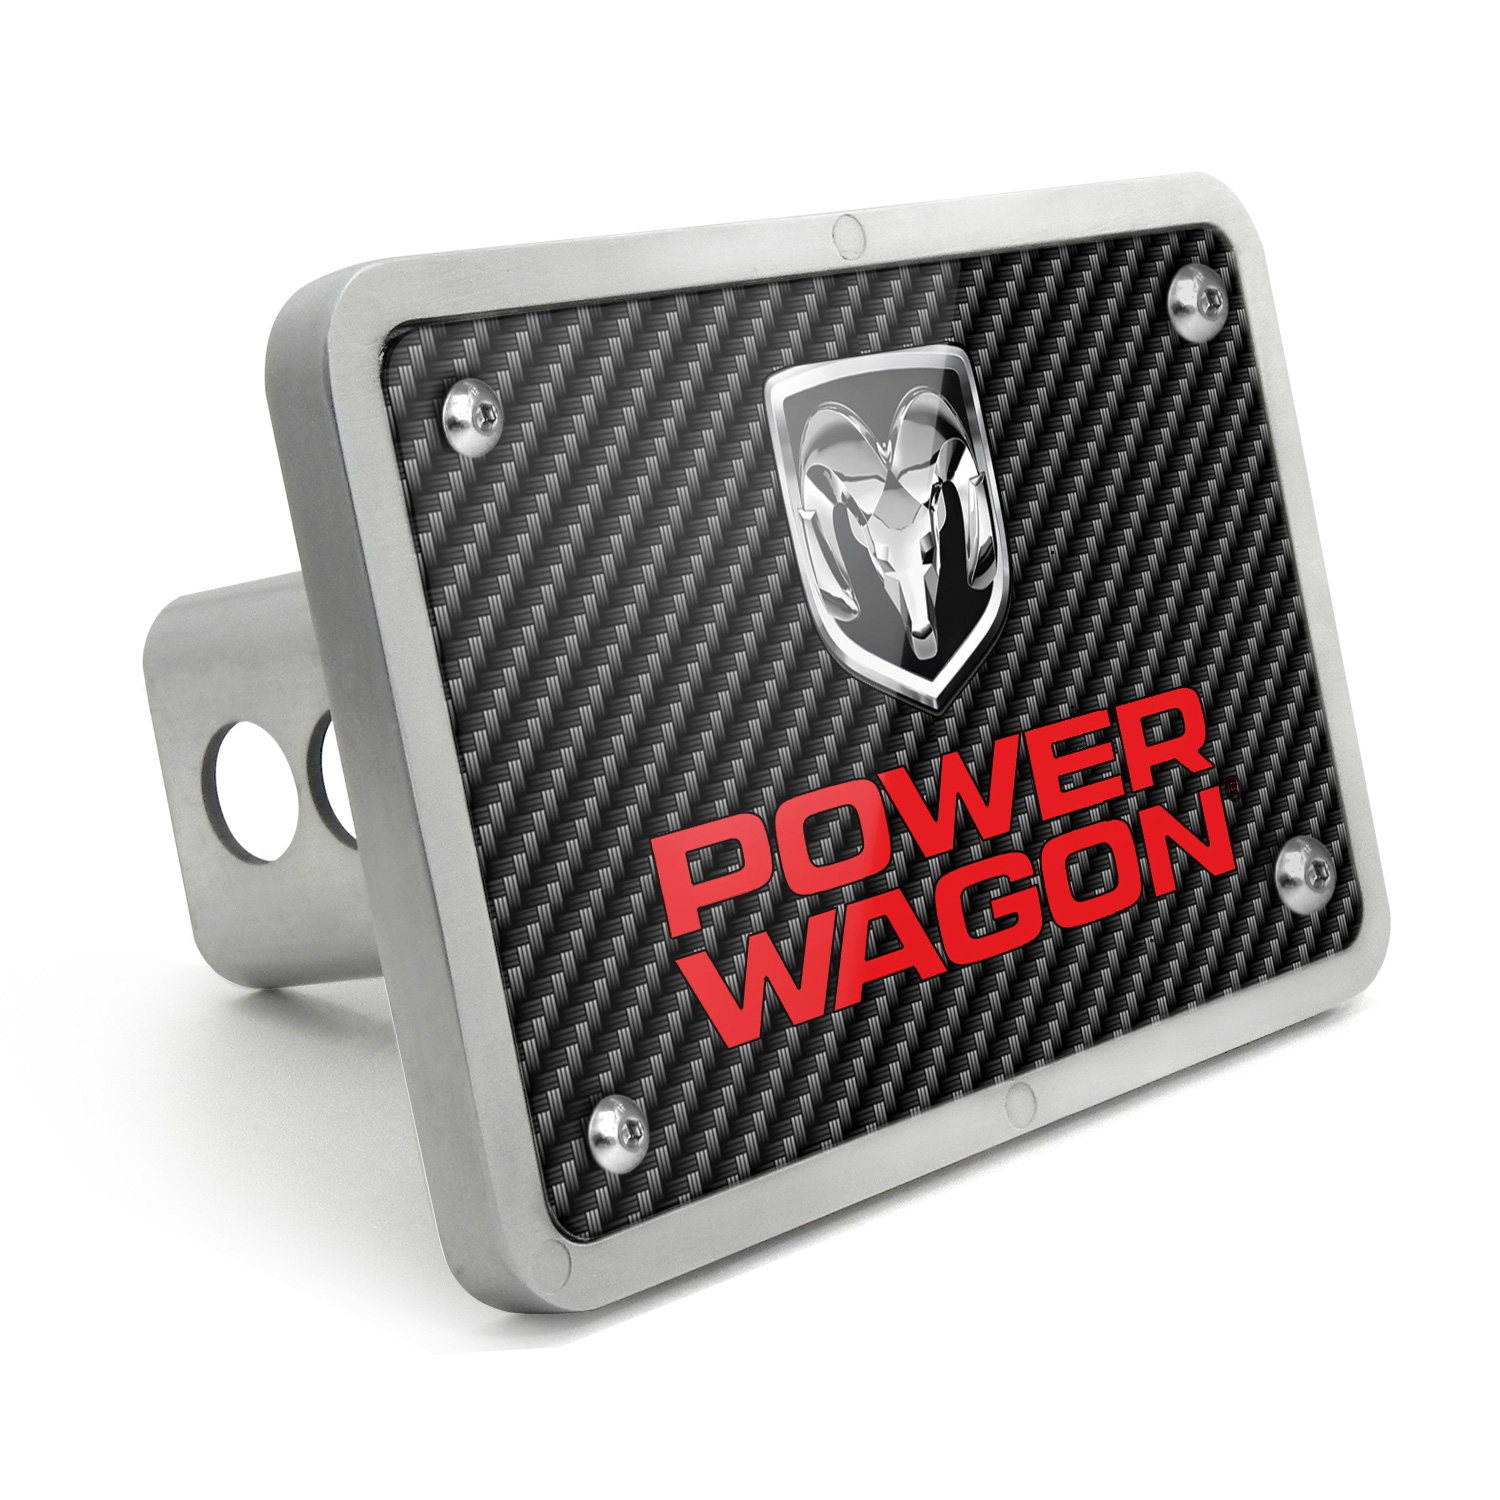 RAM Power Wagon UV Graphic Carbon Fiber Billet Aluminum 2 inch Tow Hitch Cover